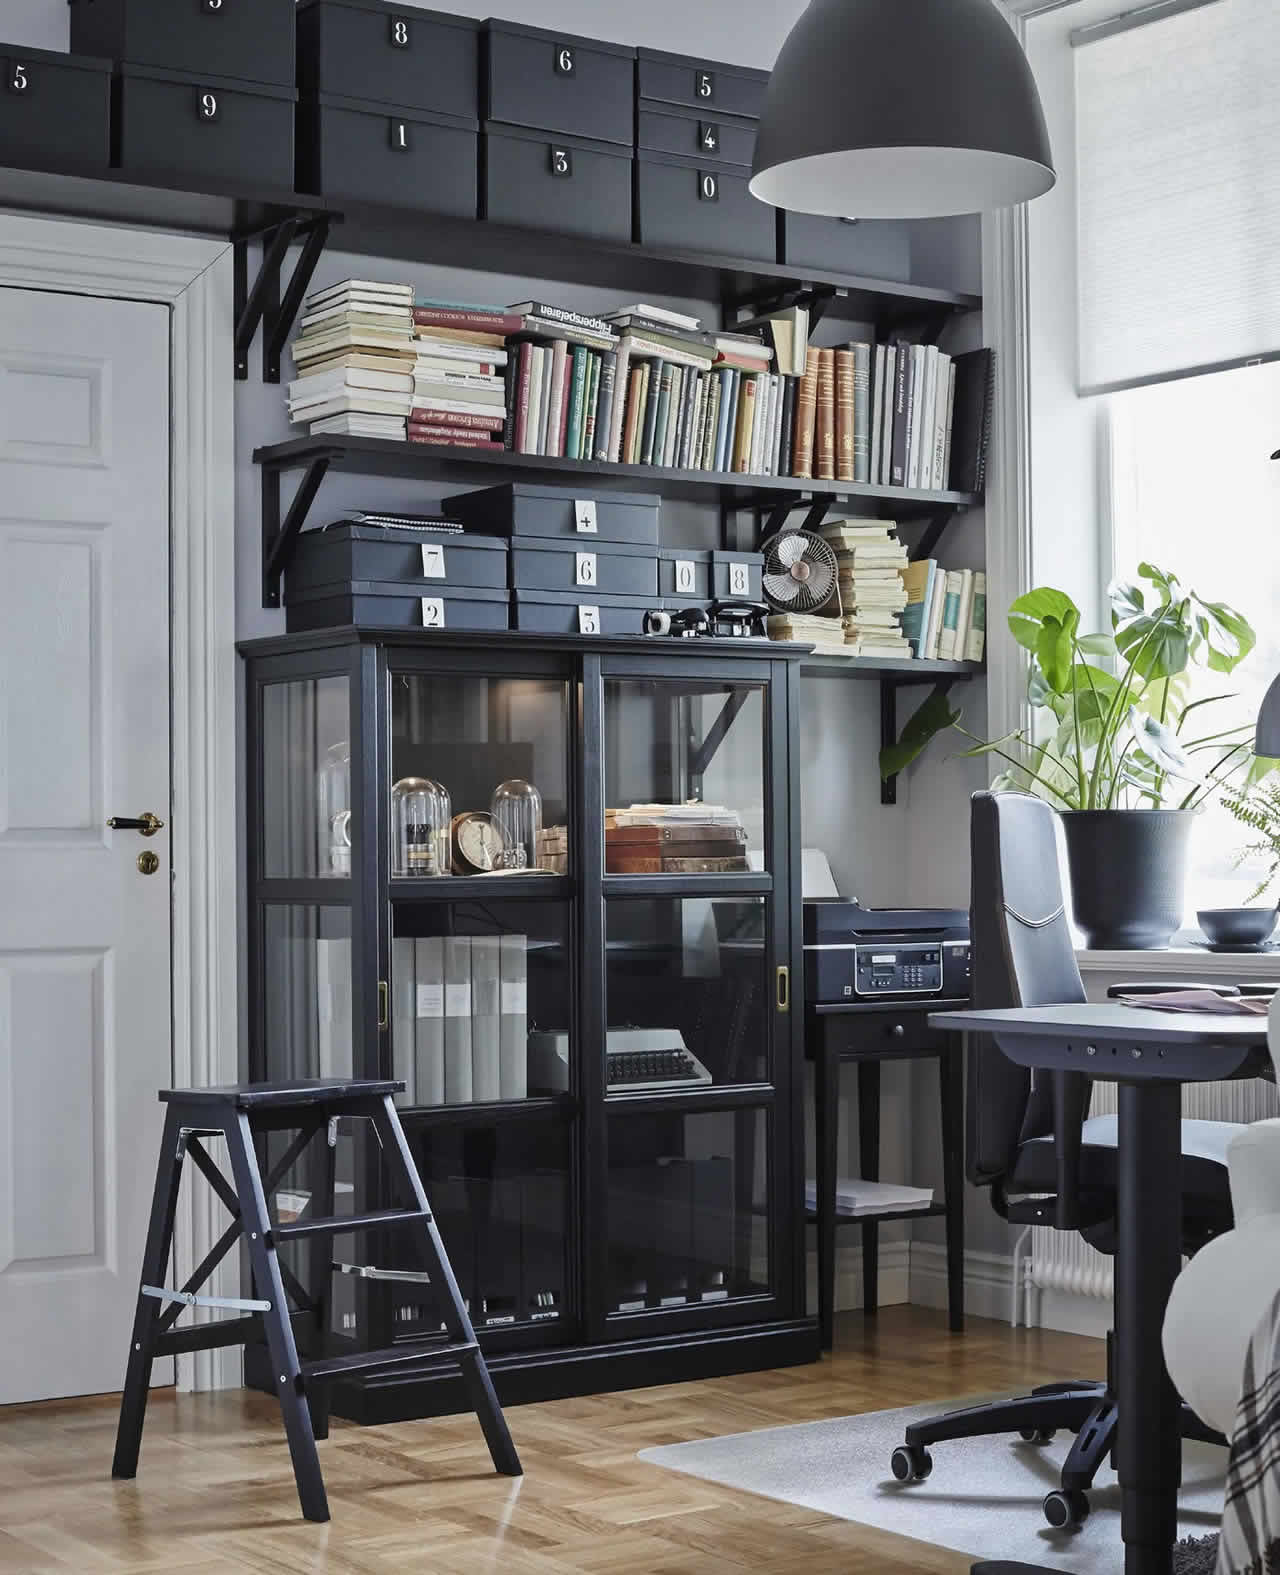 IKEA Ideas - How to set up an ergonomic workspace